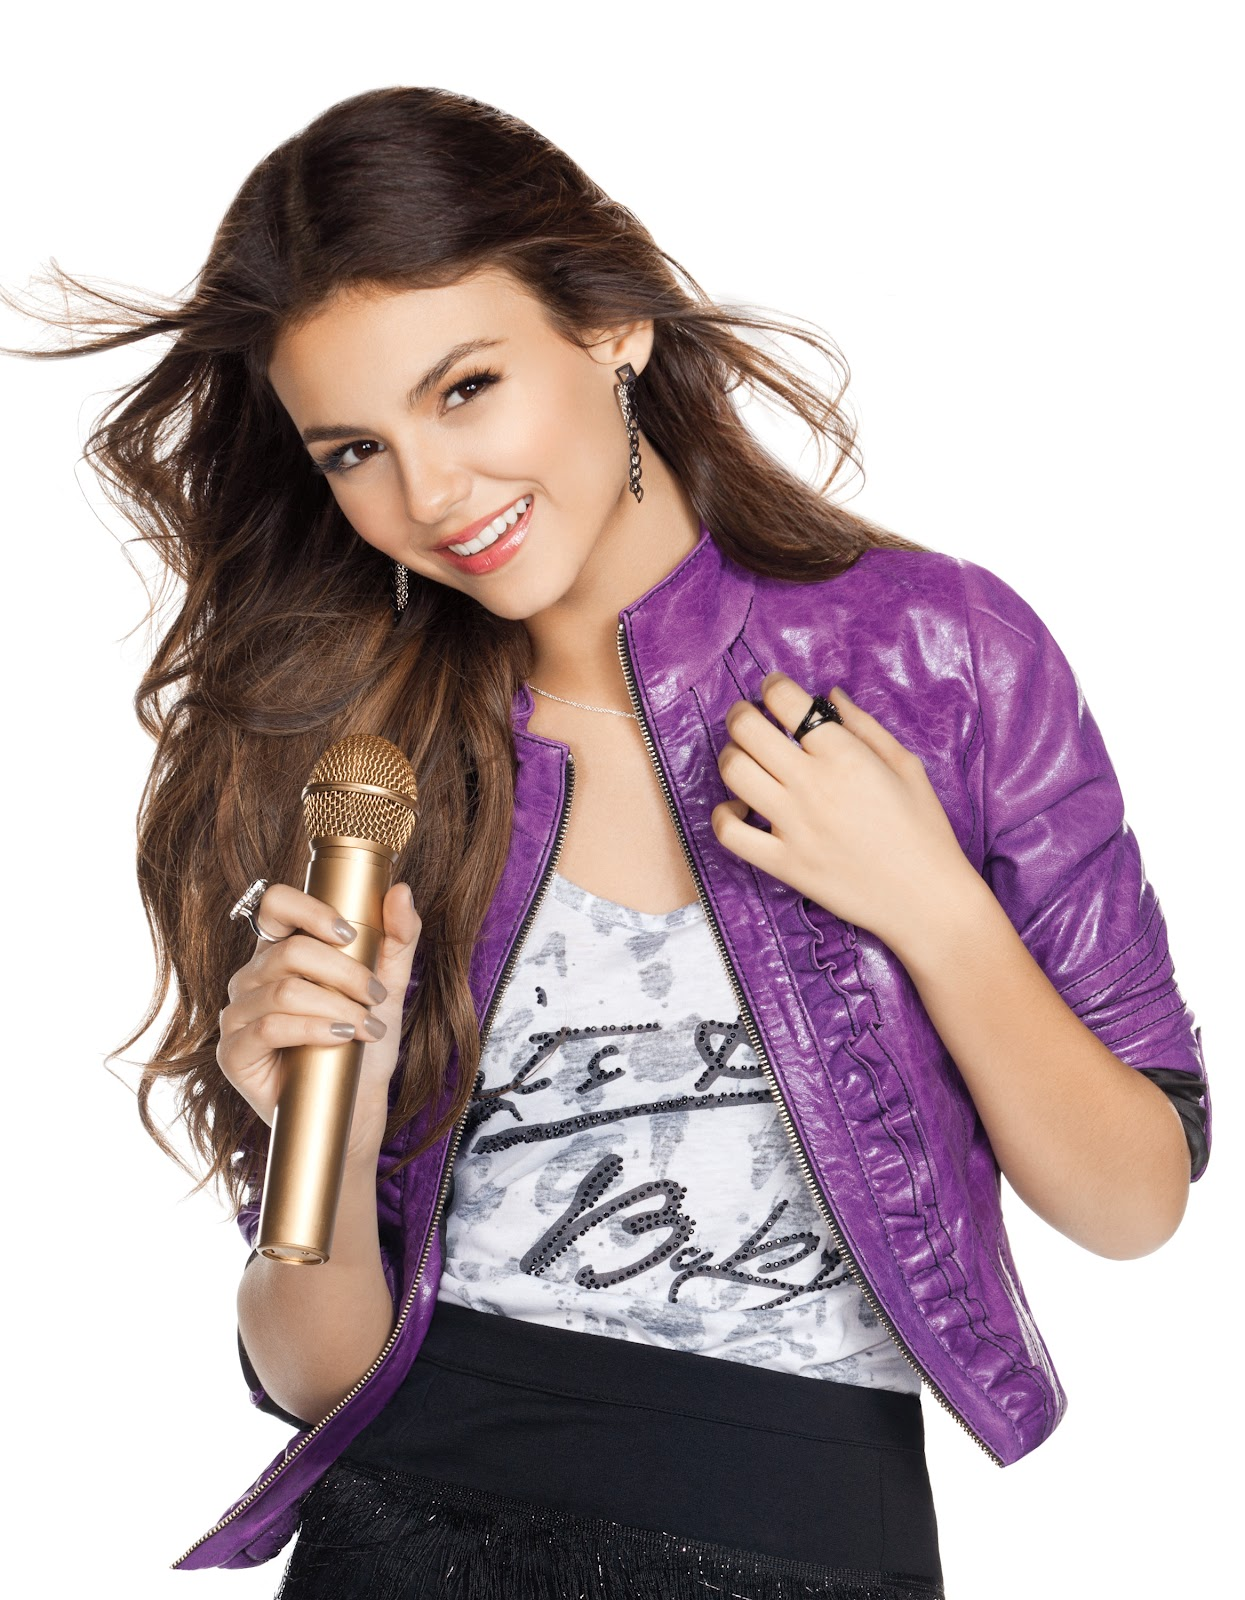 Victoria Justice Bio, Profile and Pictures